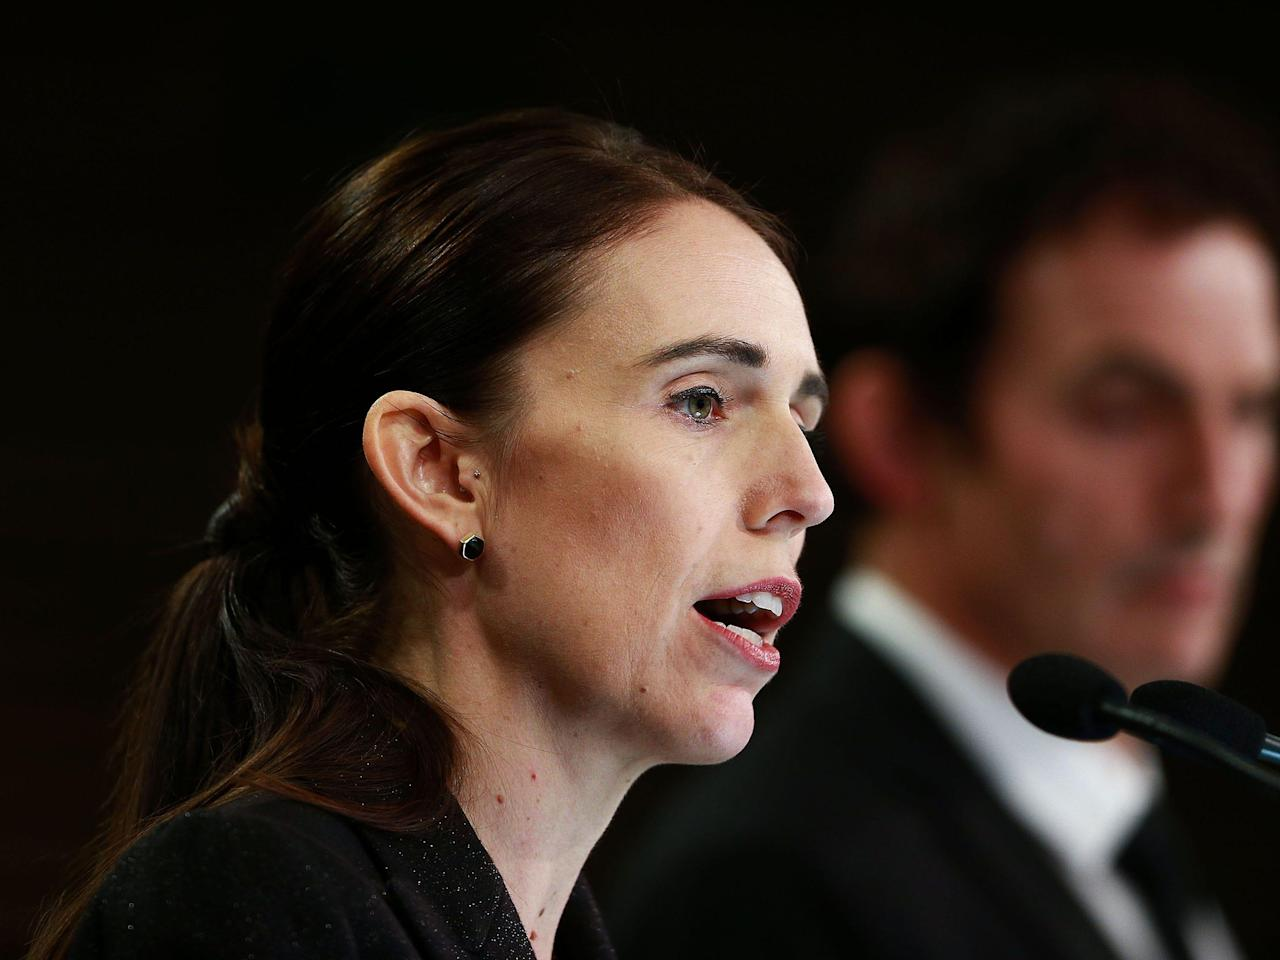 New Zealand's prime minister put the army in command of new arrivals, saying letting 2 new COVID-19 circumstances journey the nation with out being examined was an 'unacceptable failure'